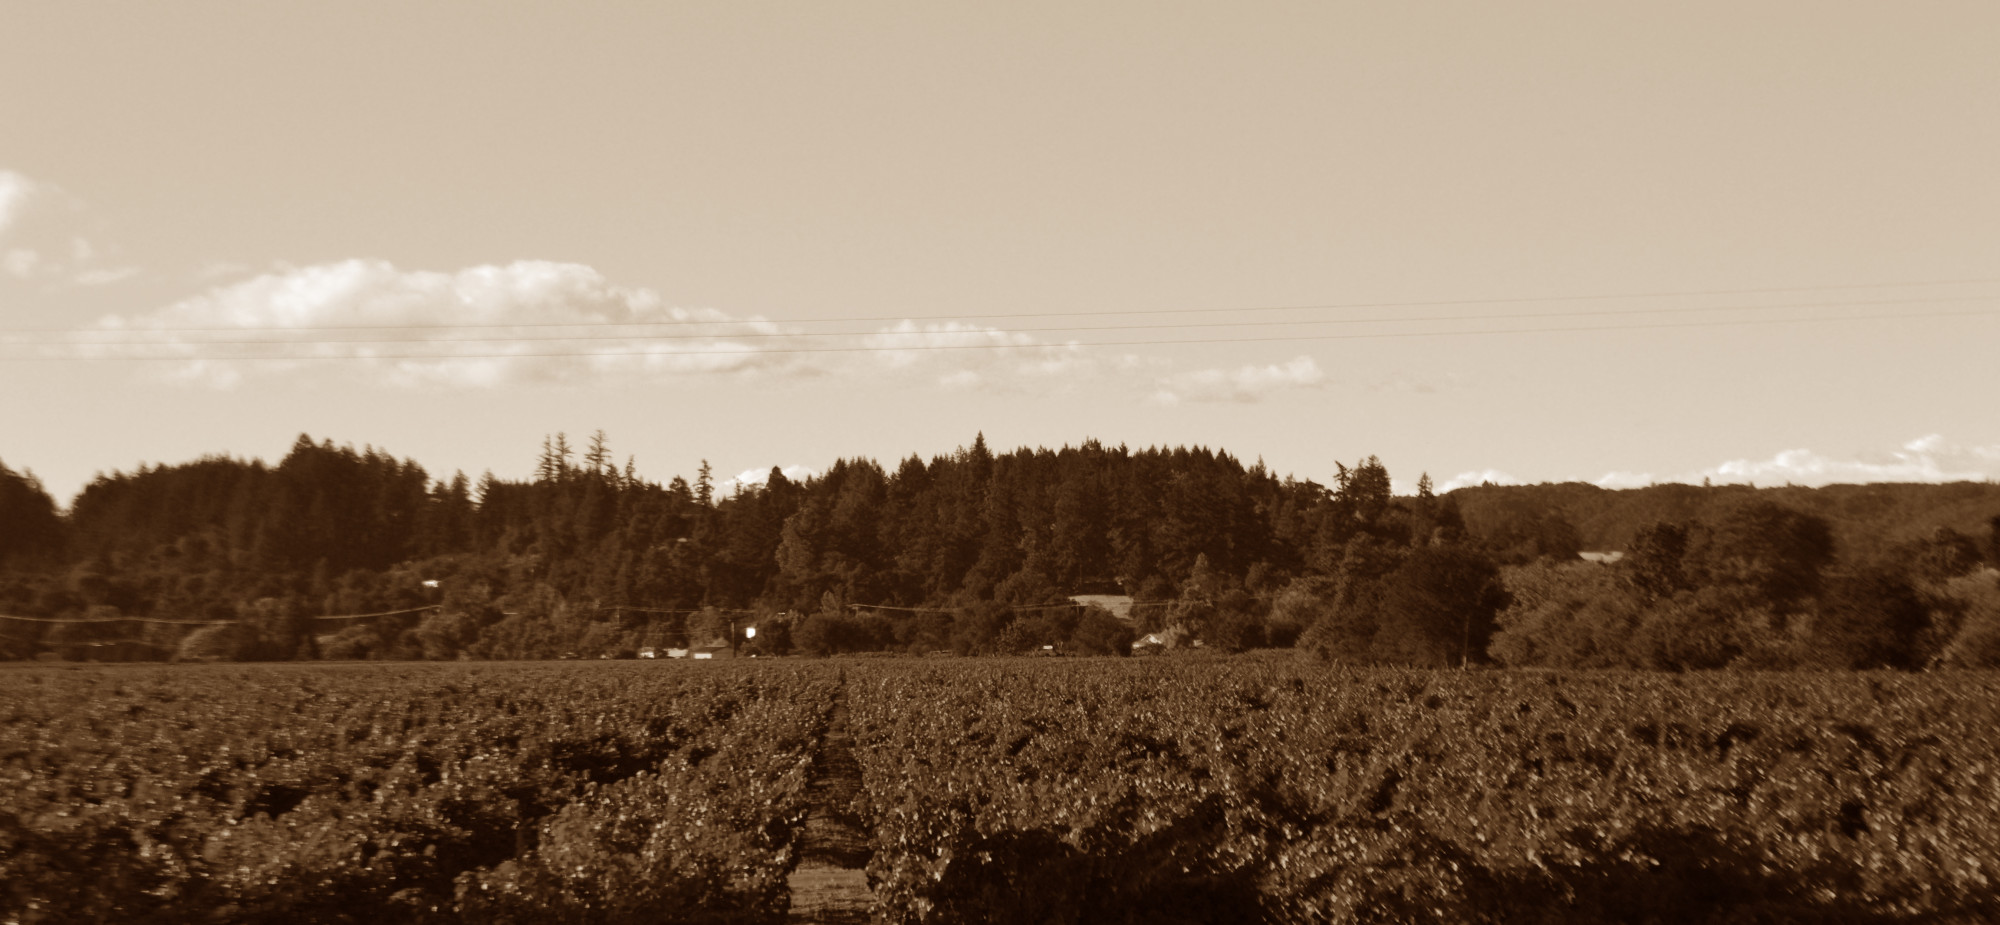 vineyard in sepia